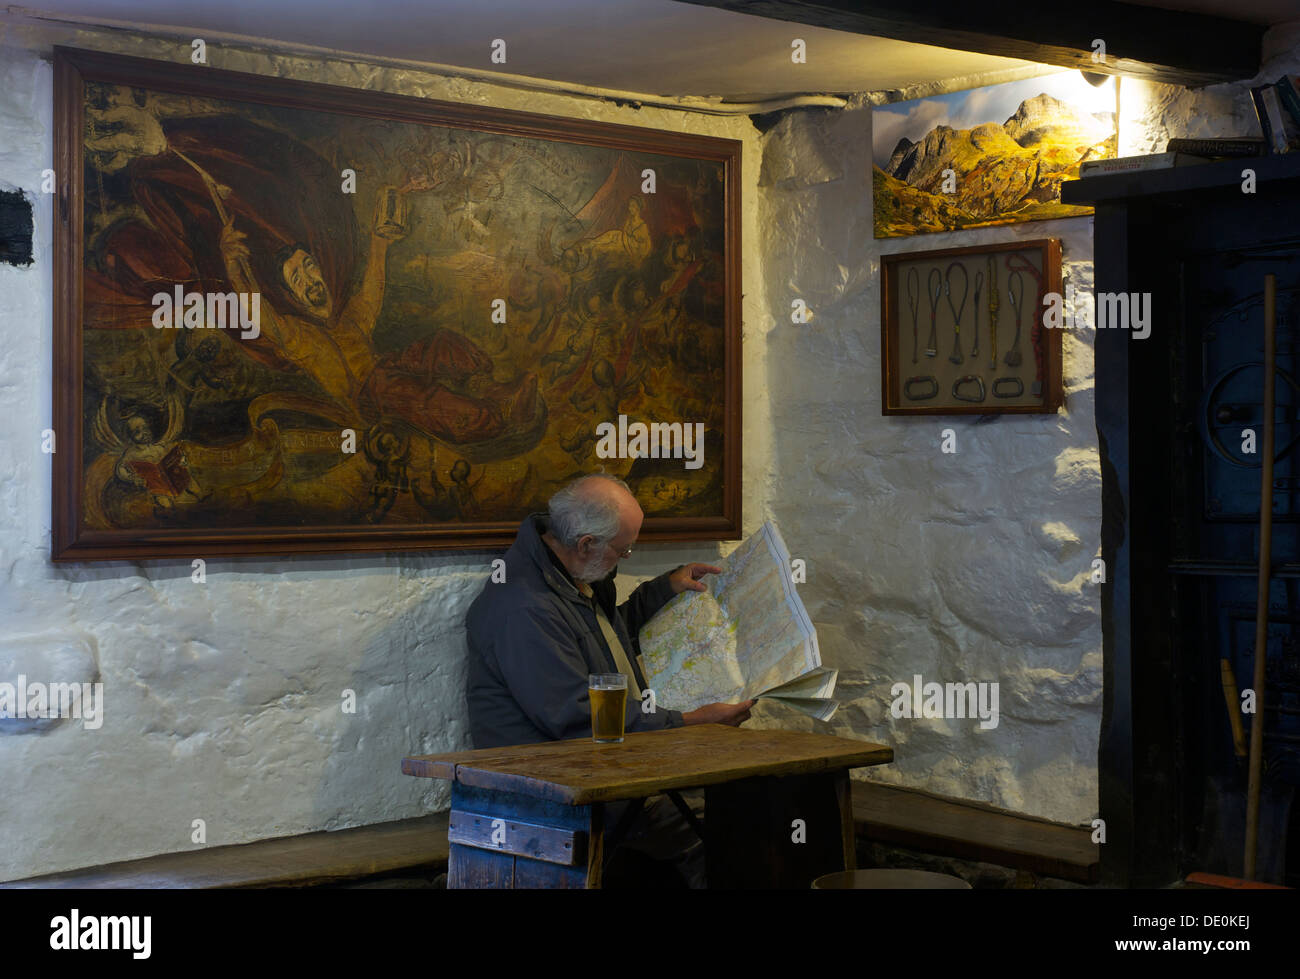 Elderly man reading Ordnance Survey map in climber's bar of the Old Dungeon Ghyll Hotel, Langdale, Lake District, Cumbria UK Stock Photo